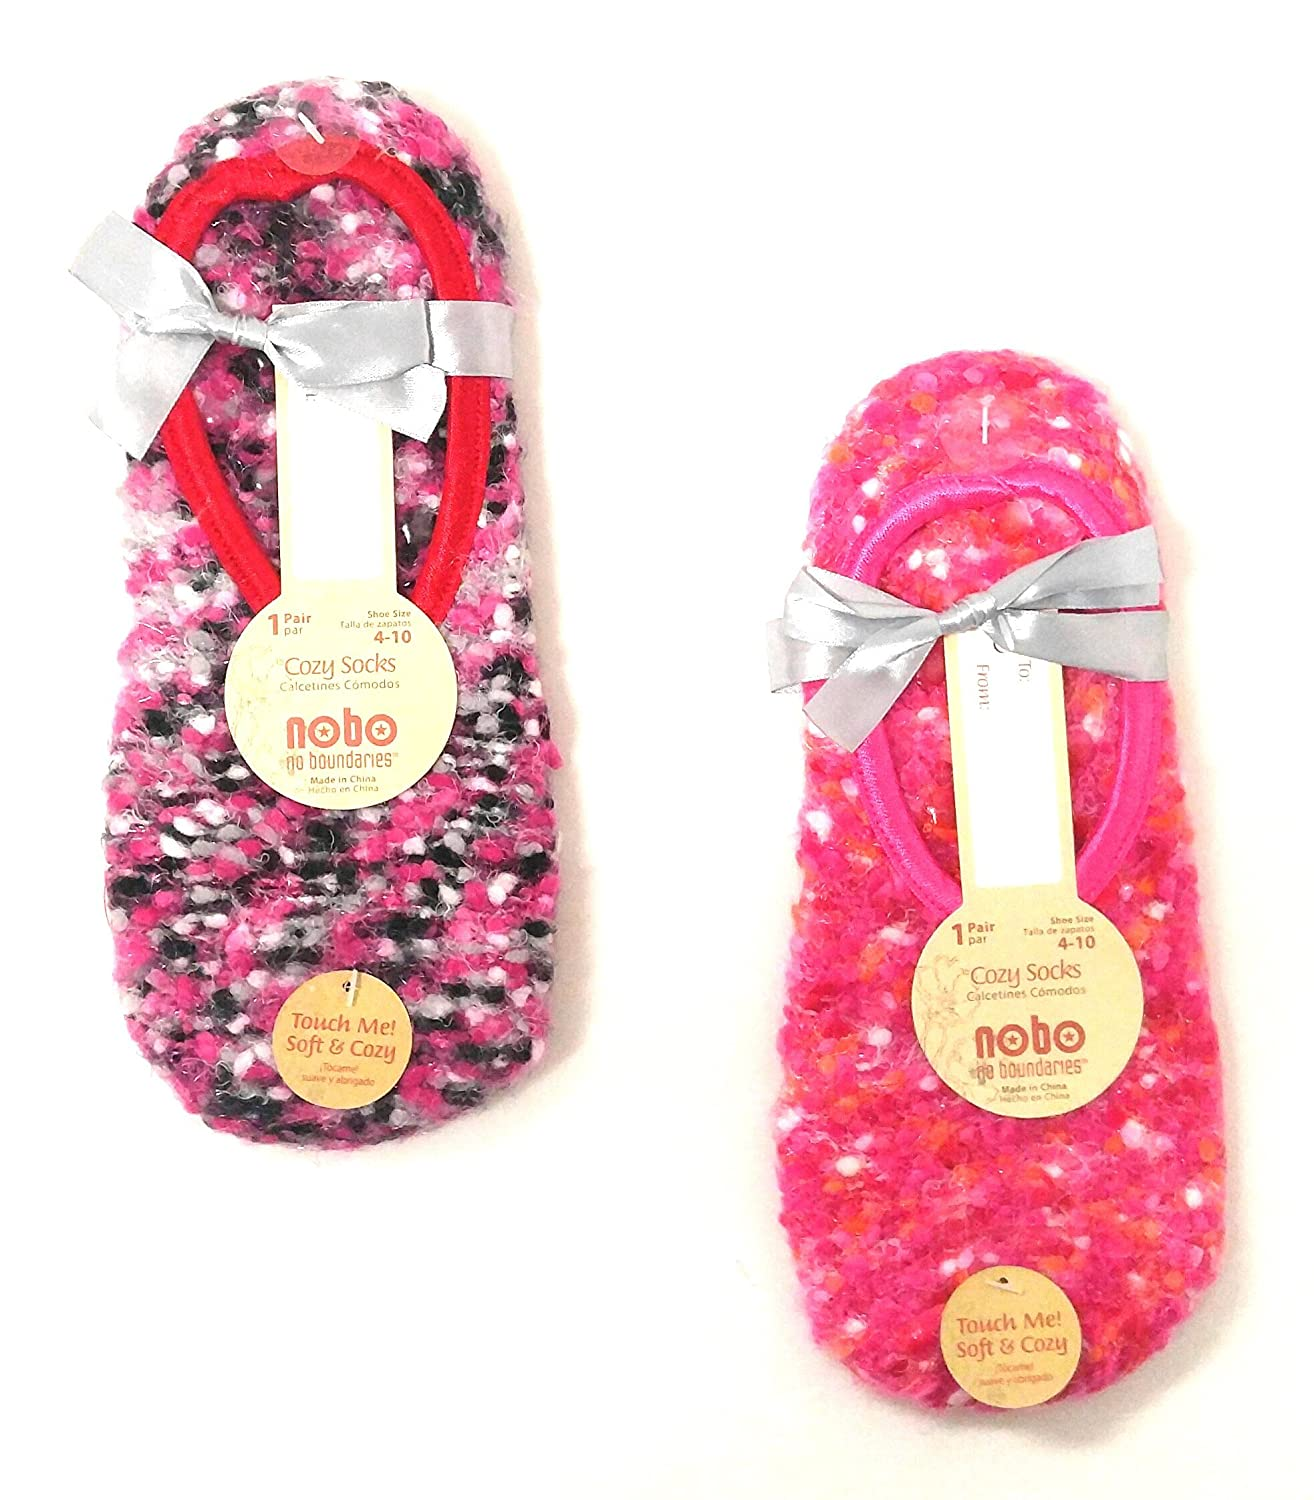 Amazon.com : Set of 2 Pairs of NOBO Cozy Ballet Slipper Socks with Non-Skid Bottoms with Red and Pink Colors : Sports & Outdoors